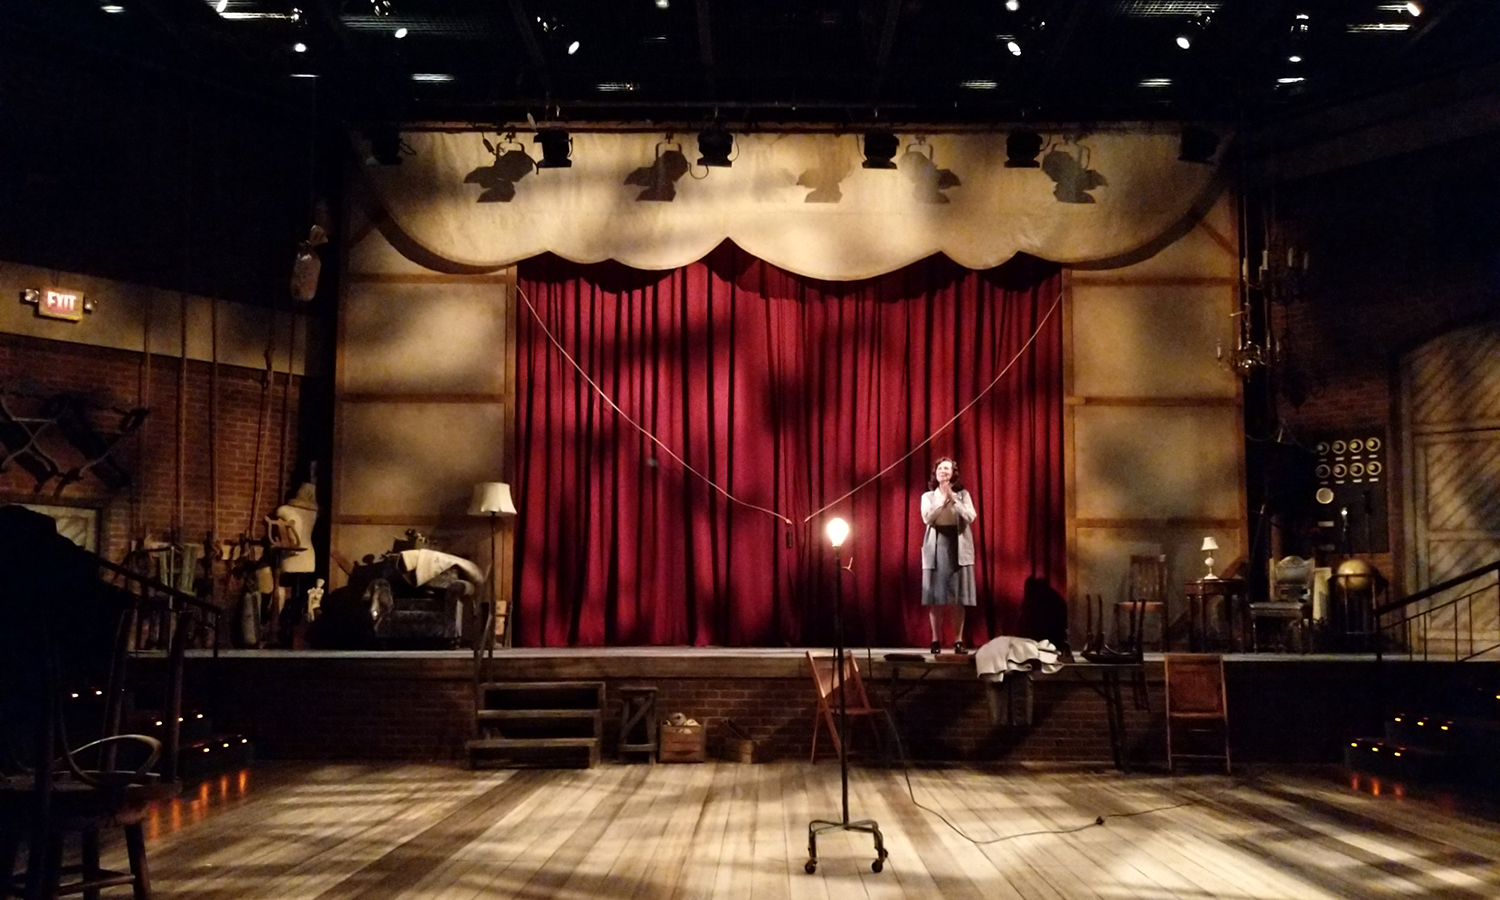 The backstage area of a theatre, with a red curtain on a raised platform. There are random props and items strewn about. A woman in a 1940s outfit is standing at stage left. Down on the lower level is a ghost light. The entire stage is covered in textured, selective lighting.